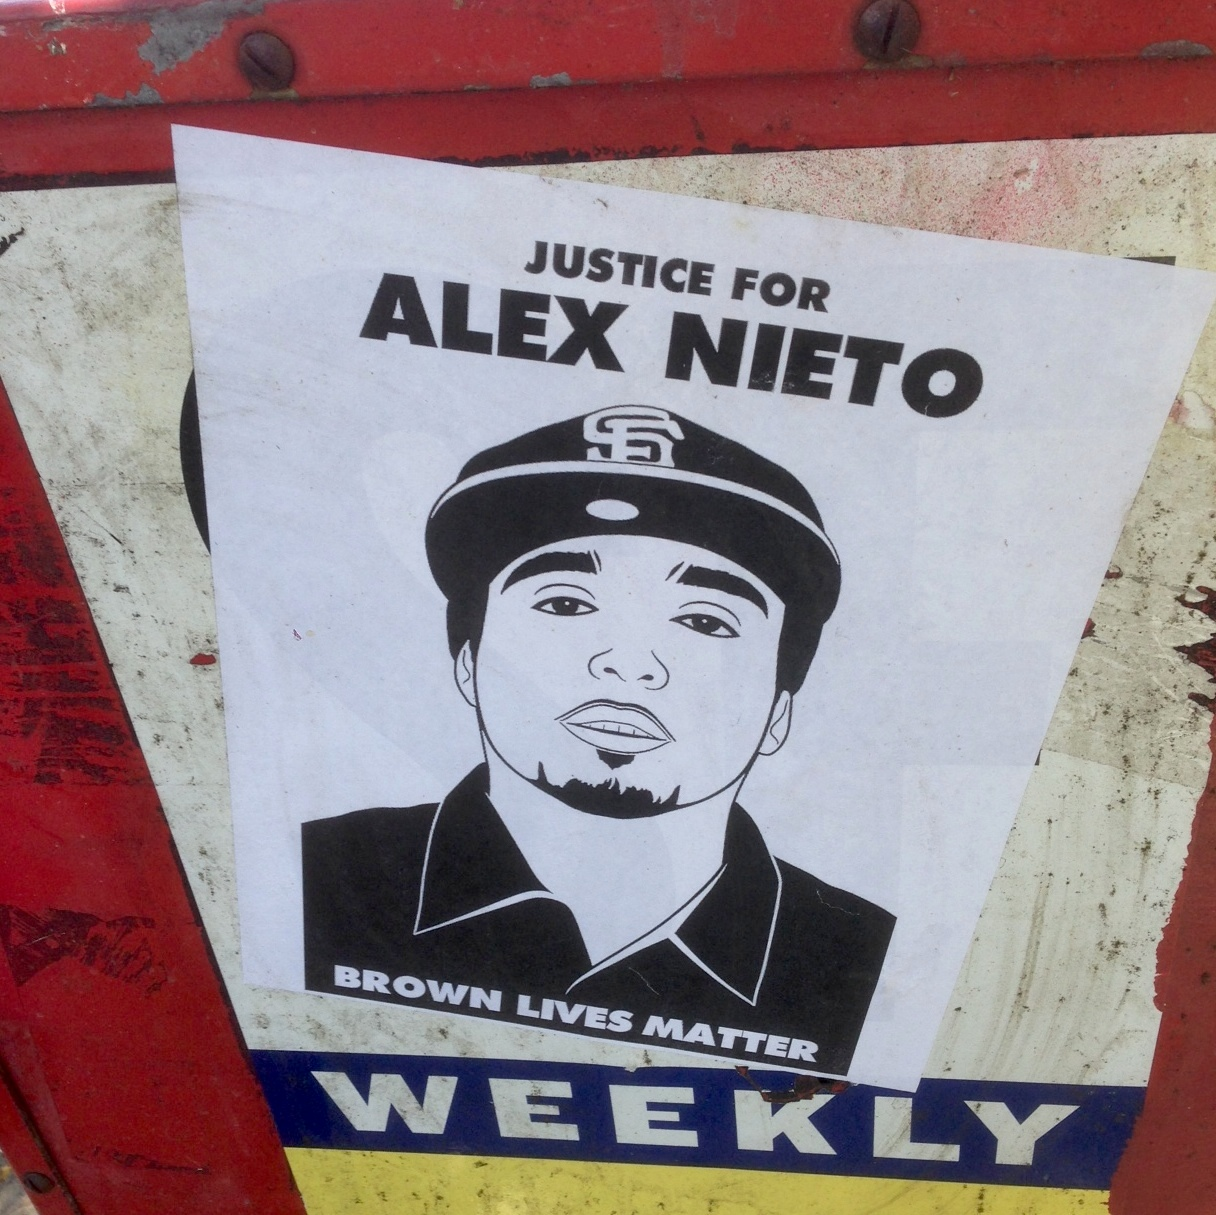 Alex Nieto Shooting Investigation Will Be Very Long and Probably Very Unsatisfying